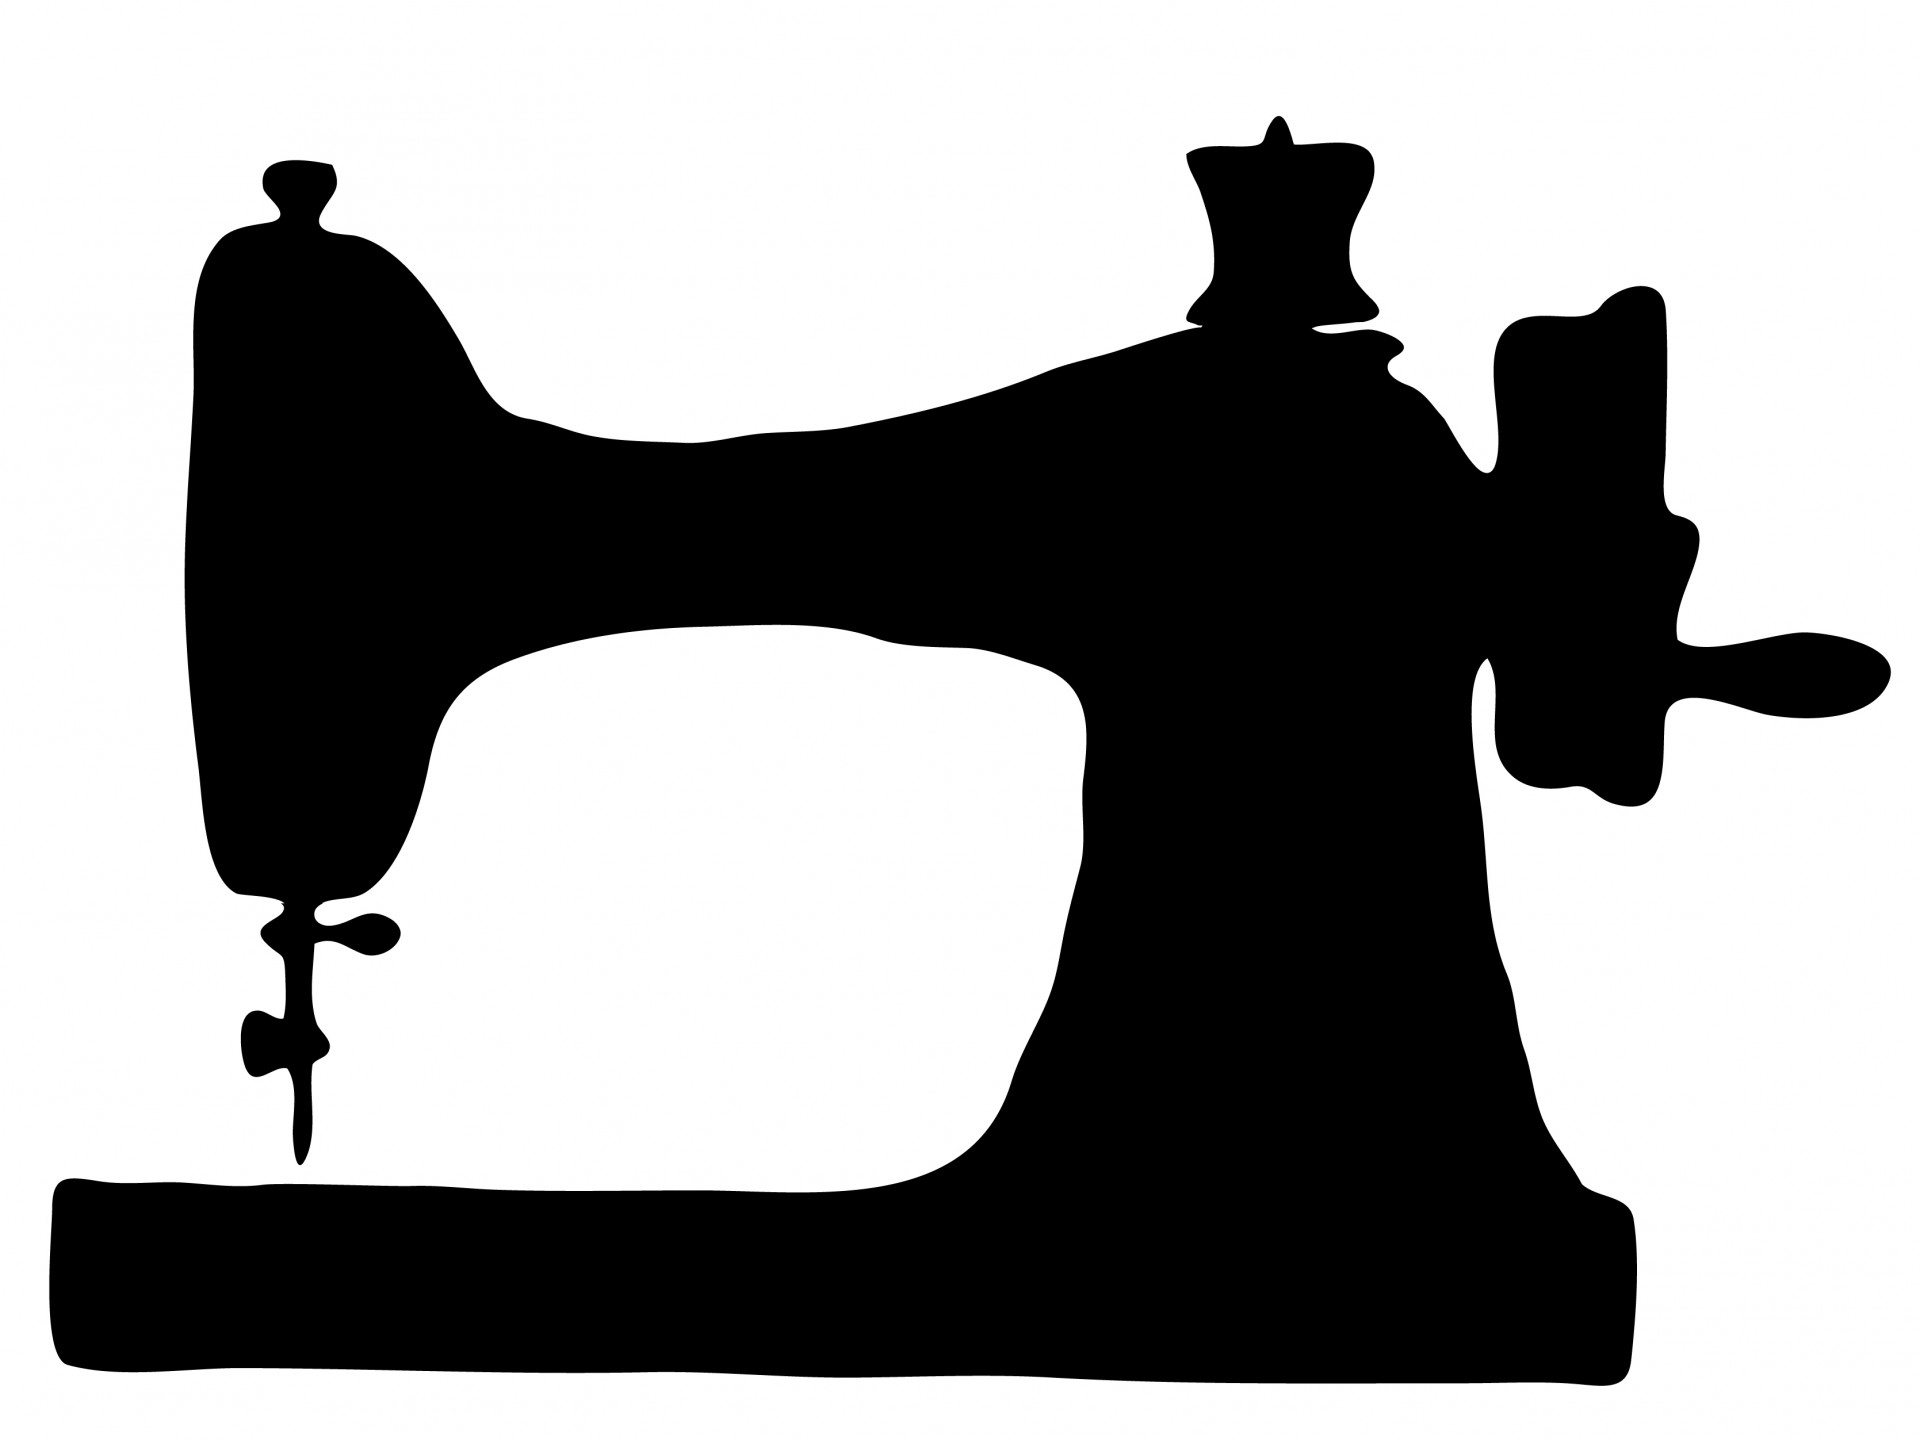 1920x1440 Vintage Sewing Machine Clipart Free Stock Photo